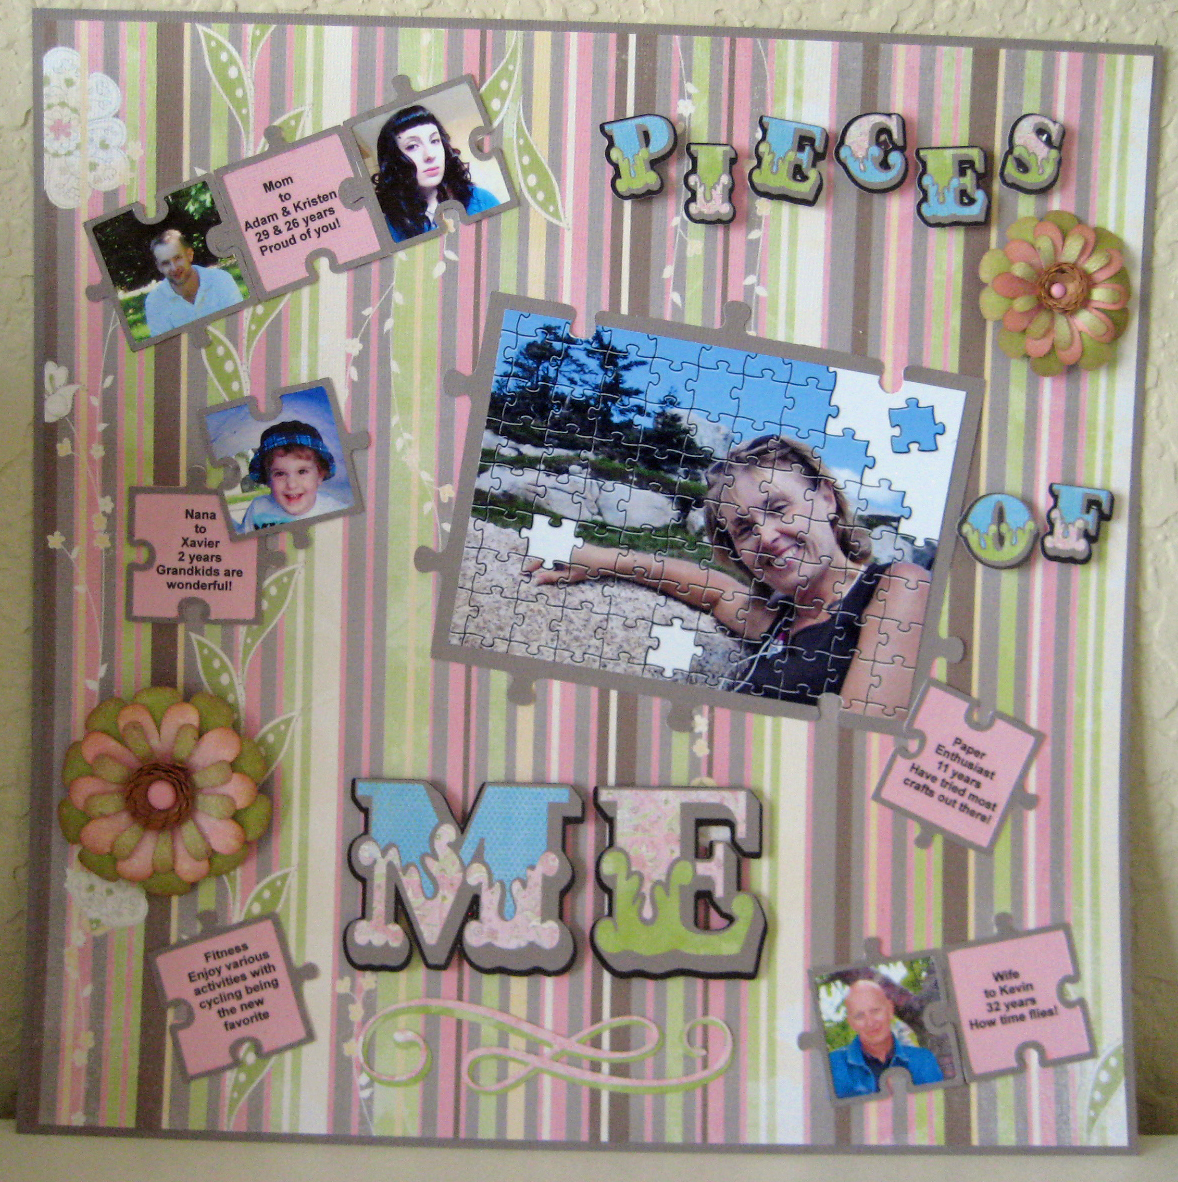 Scrapbook ideas many pictures - Scrapbook Ideas About Me I Love To Scrapbook But Not About Me It Took Me